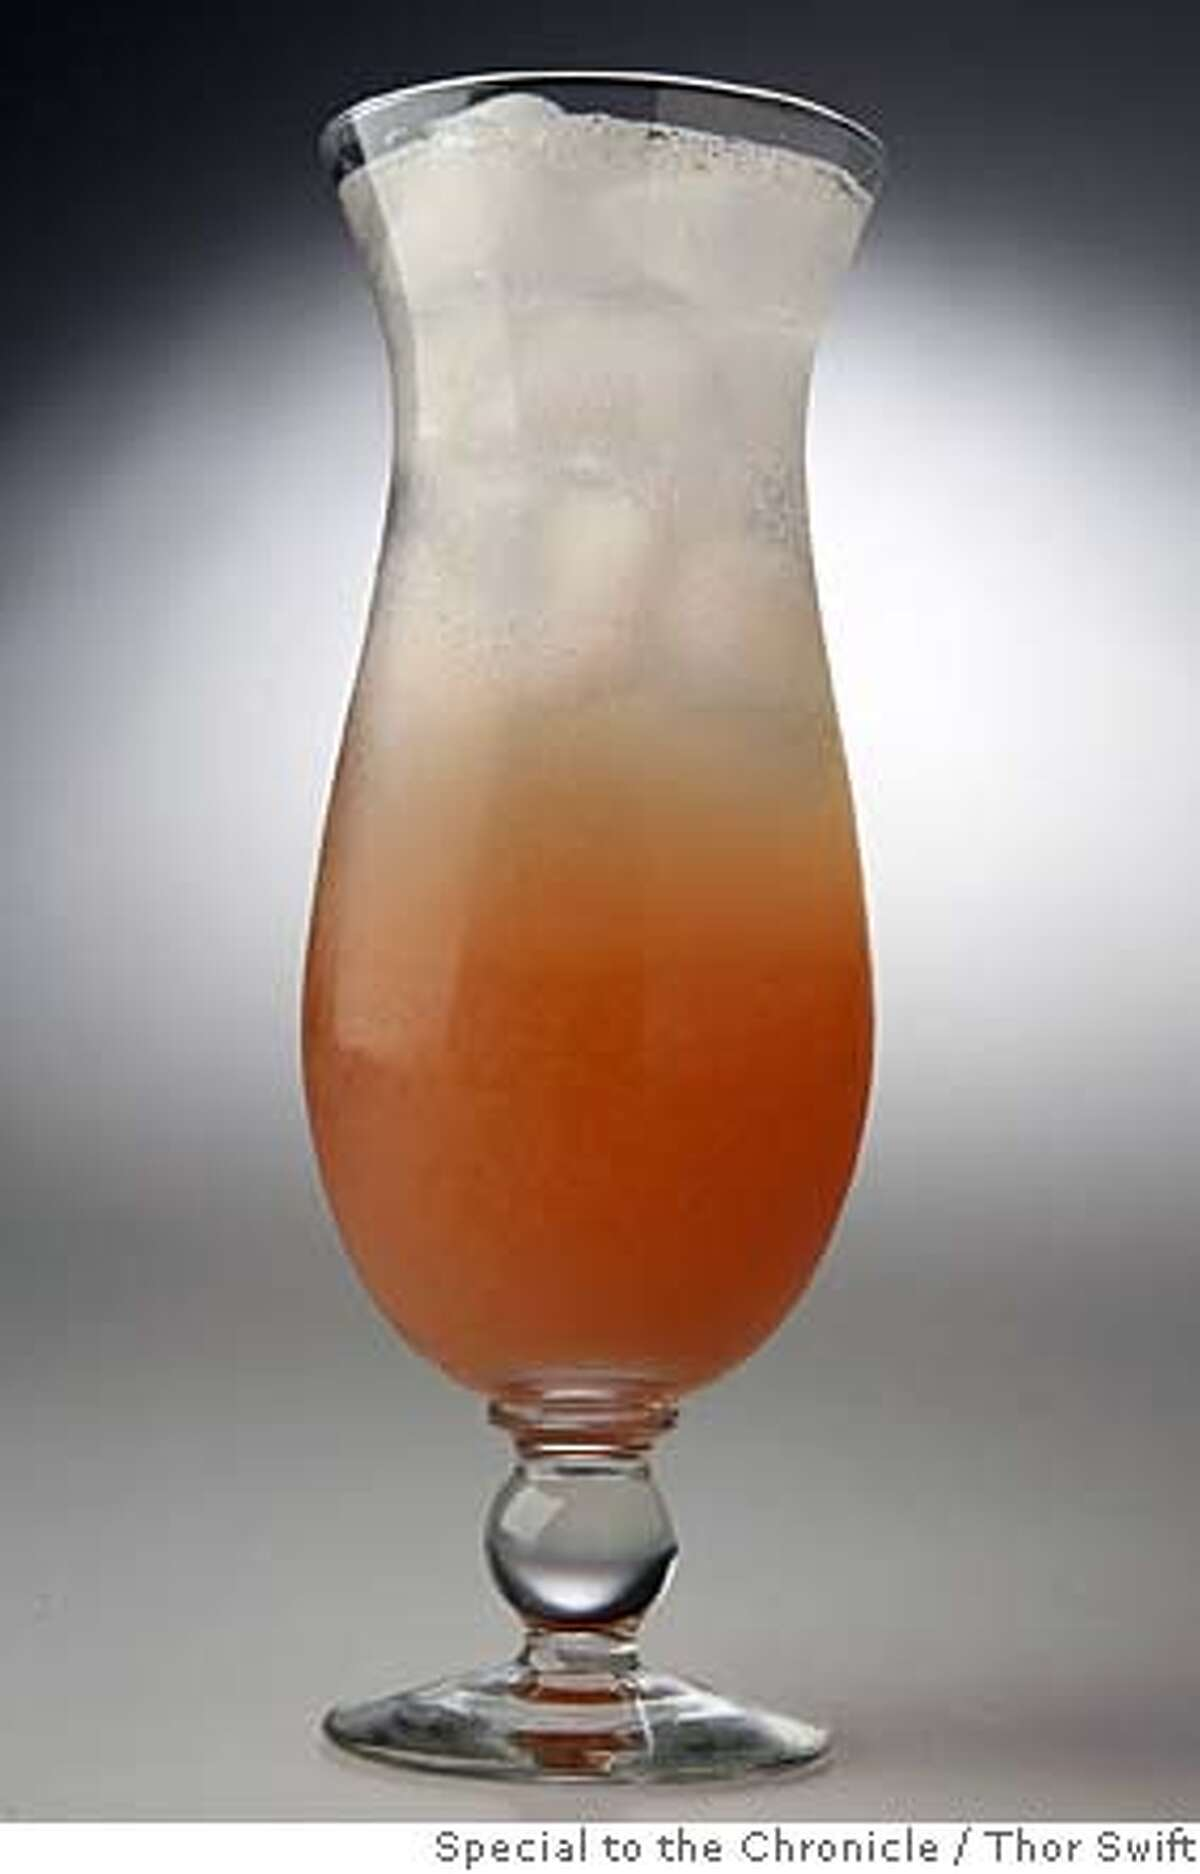 ###Live Caption:Singapore Sling coctail photographed Thursday, March 6, 2008 at the San Francisco Chronicle studio. Thor Swift For The San Francisco Chronicle###Caption History:Singapore Sling coctail photographed Thursday, March 6, 2008 at the San Francisco Chronicle studio. Thor Swift For The San Francisco Chronicle###Notes:###Special Instructions:38694